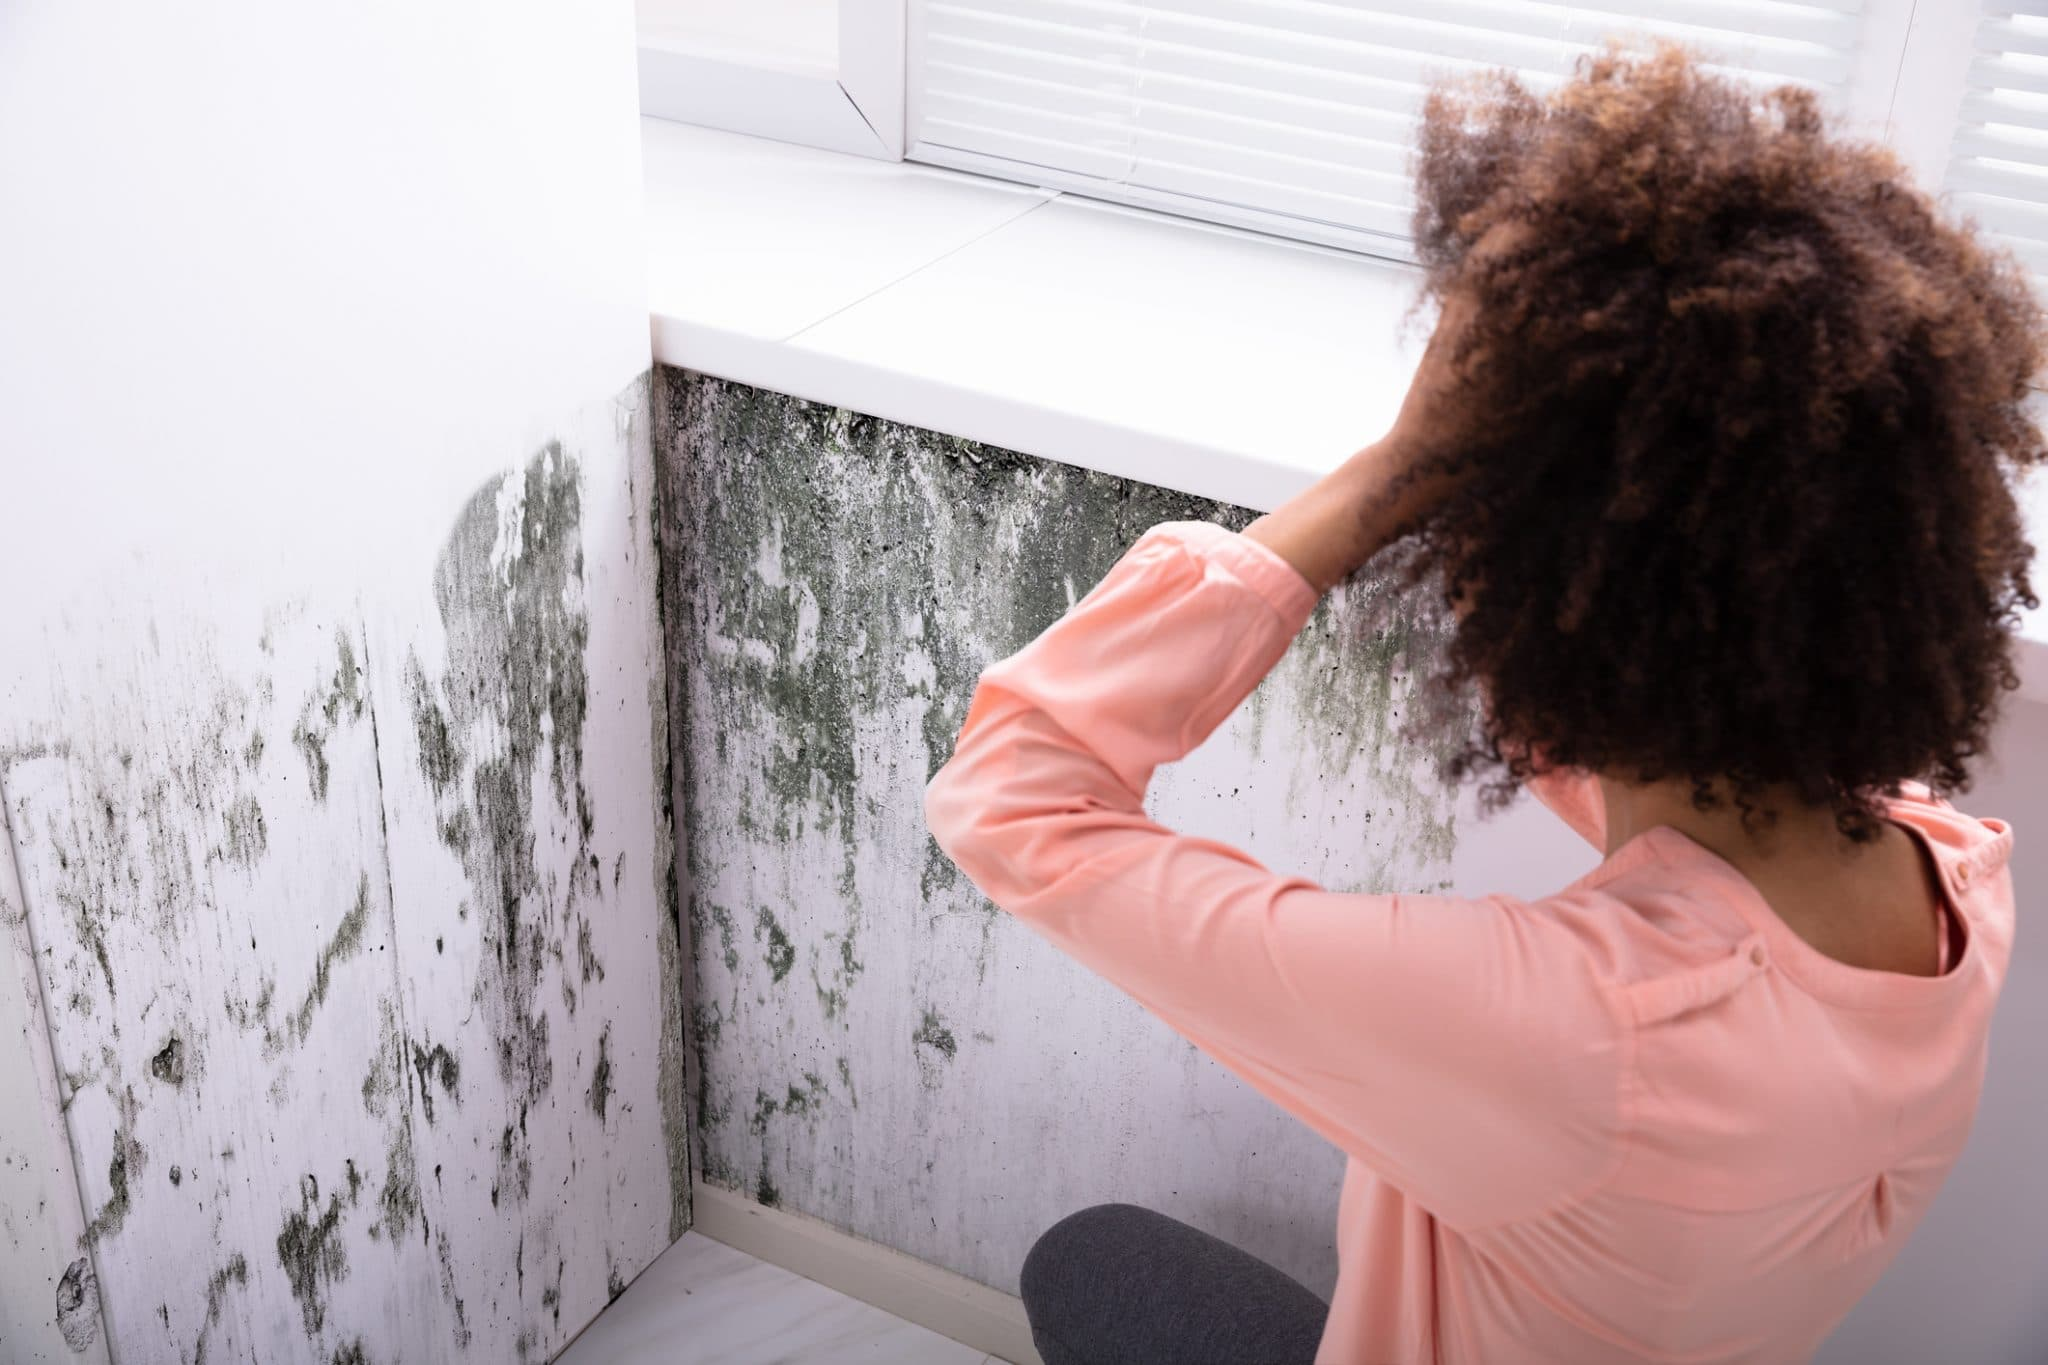 Home Problems That May Cause Illness